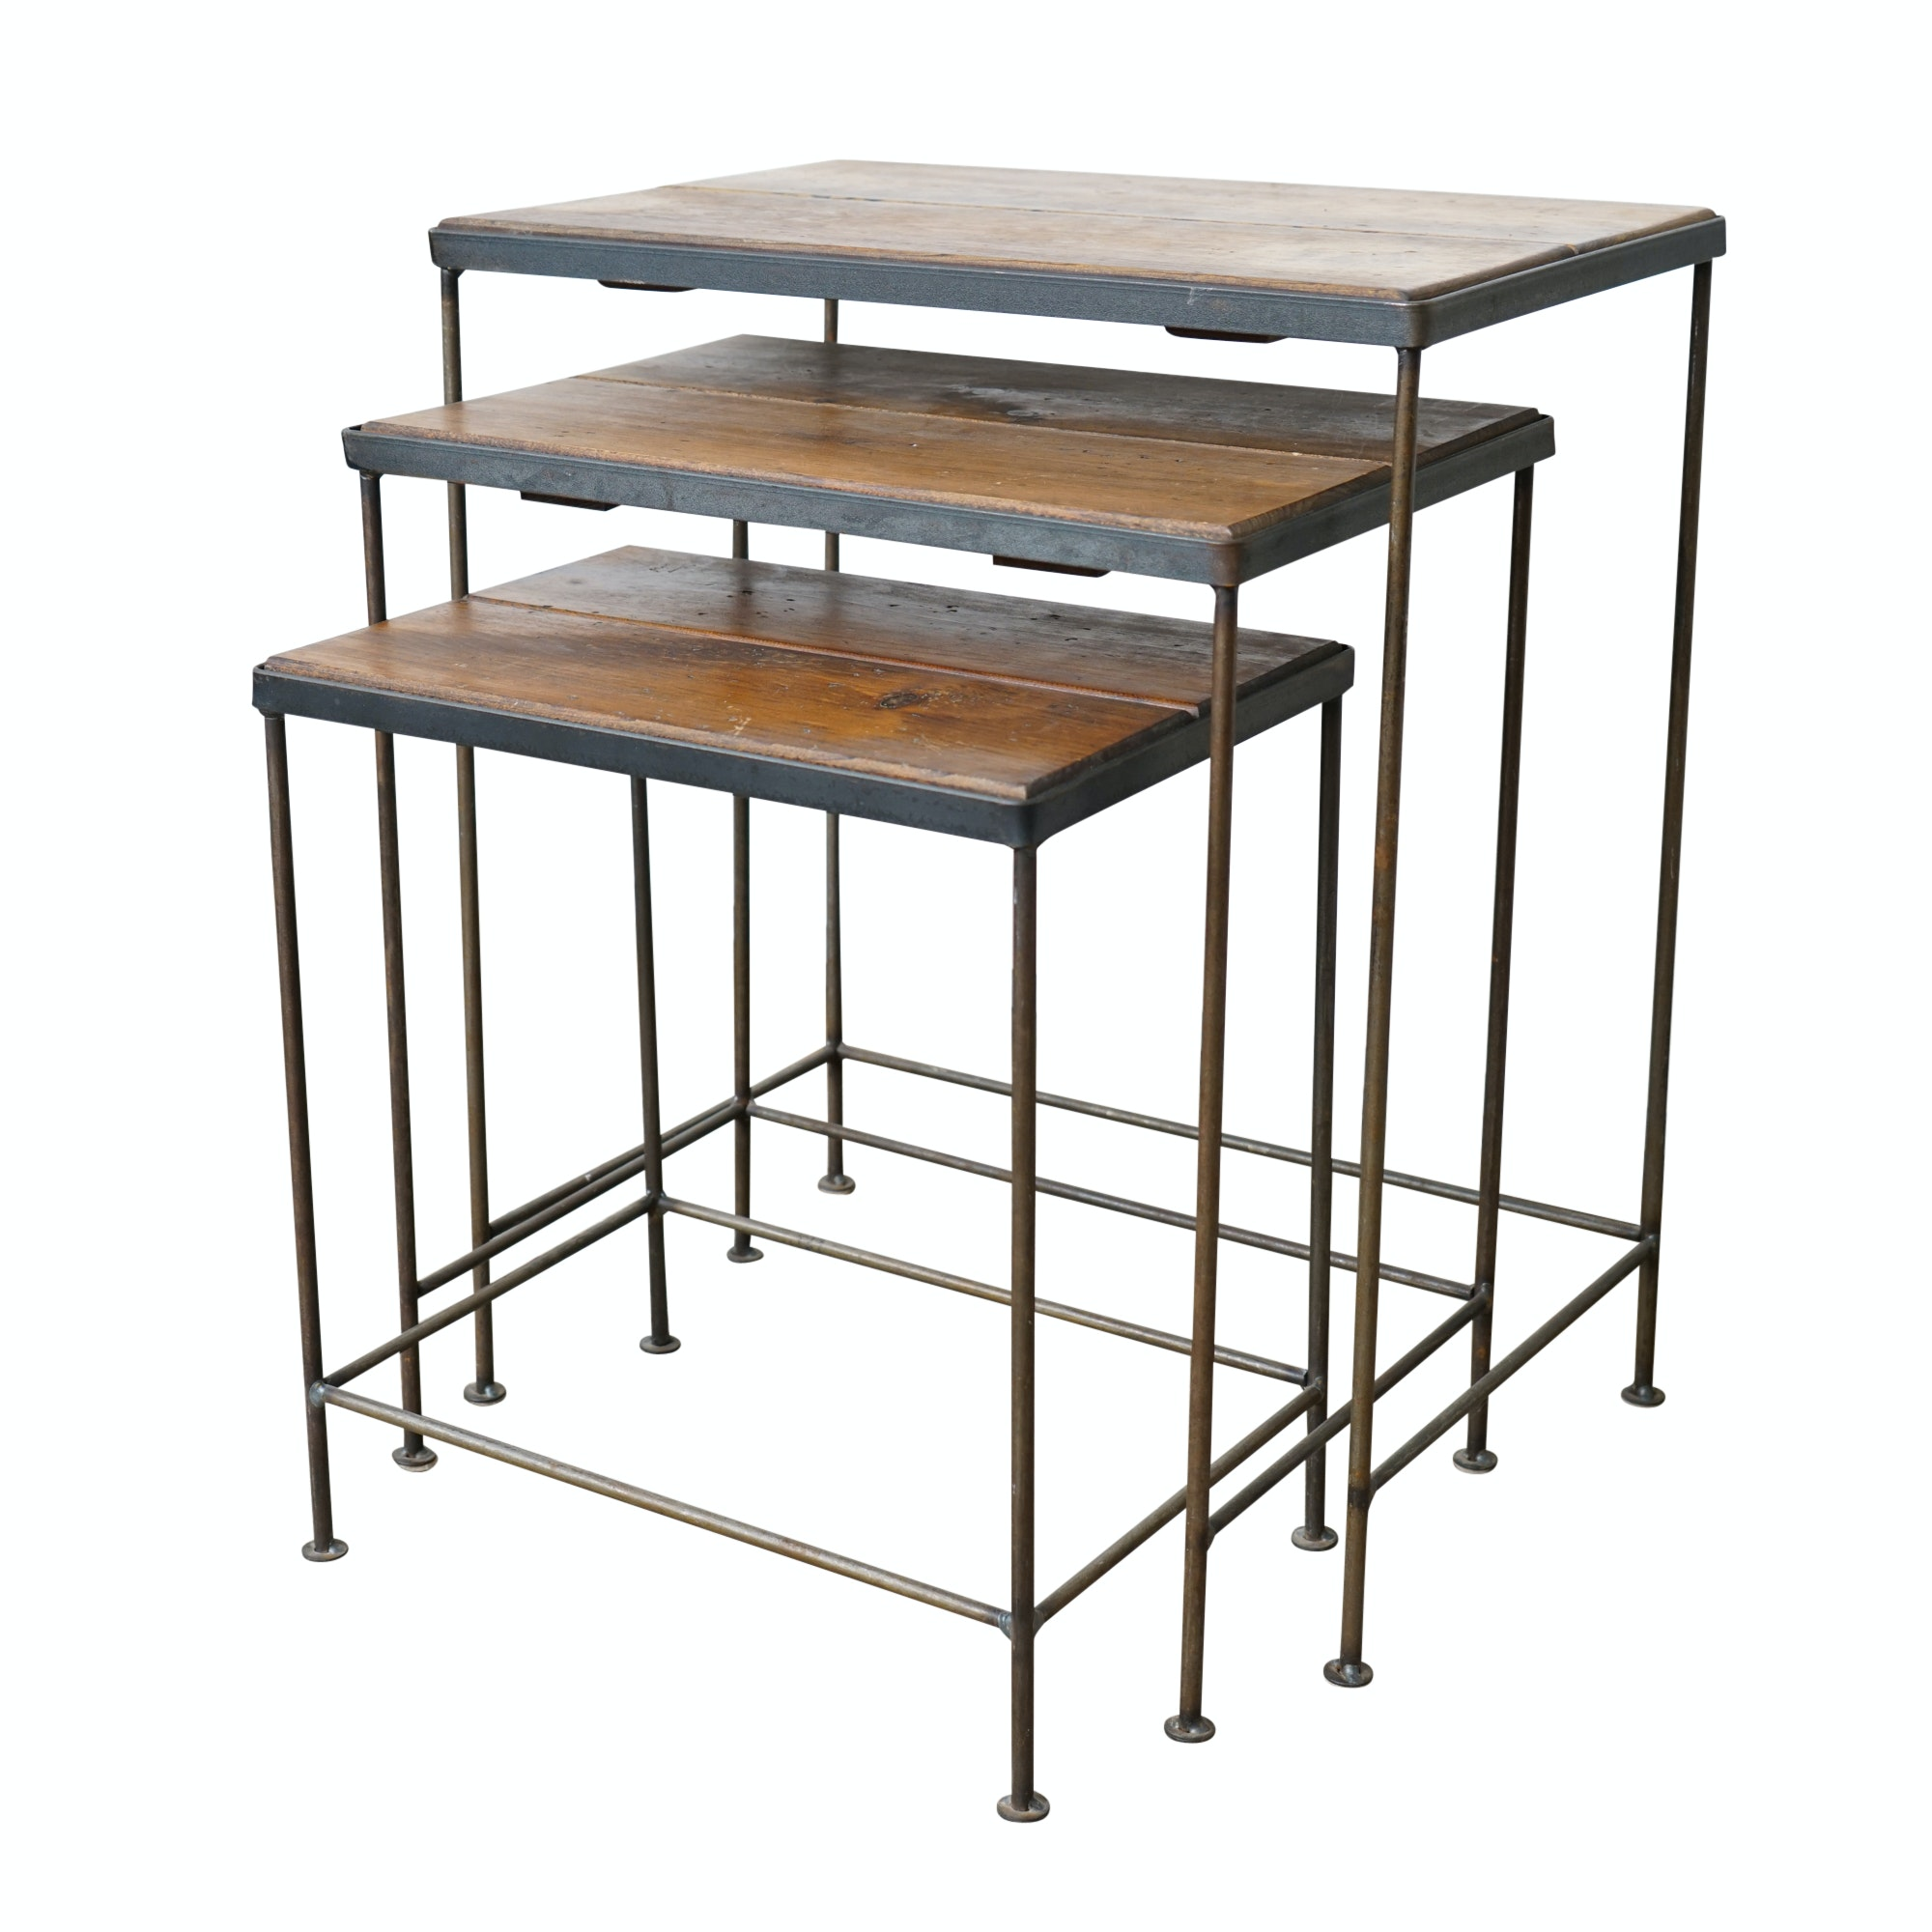 Wood and Metal Nesting Tables